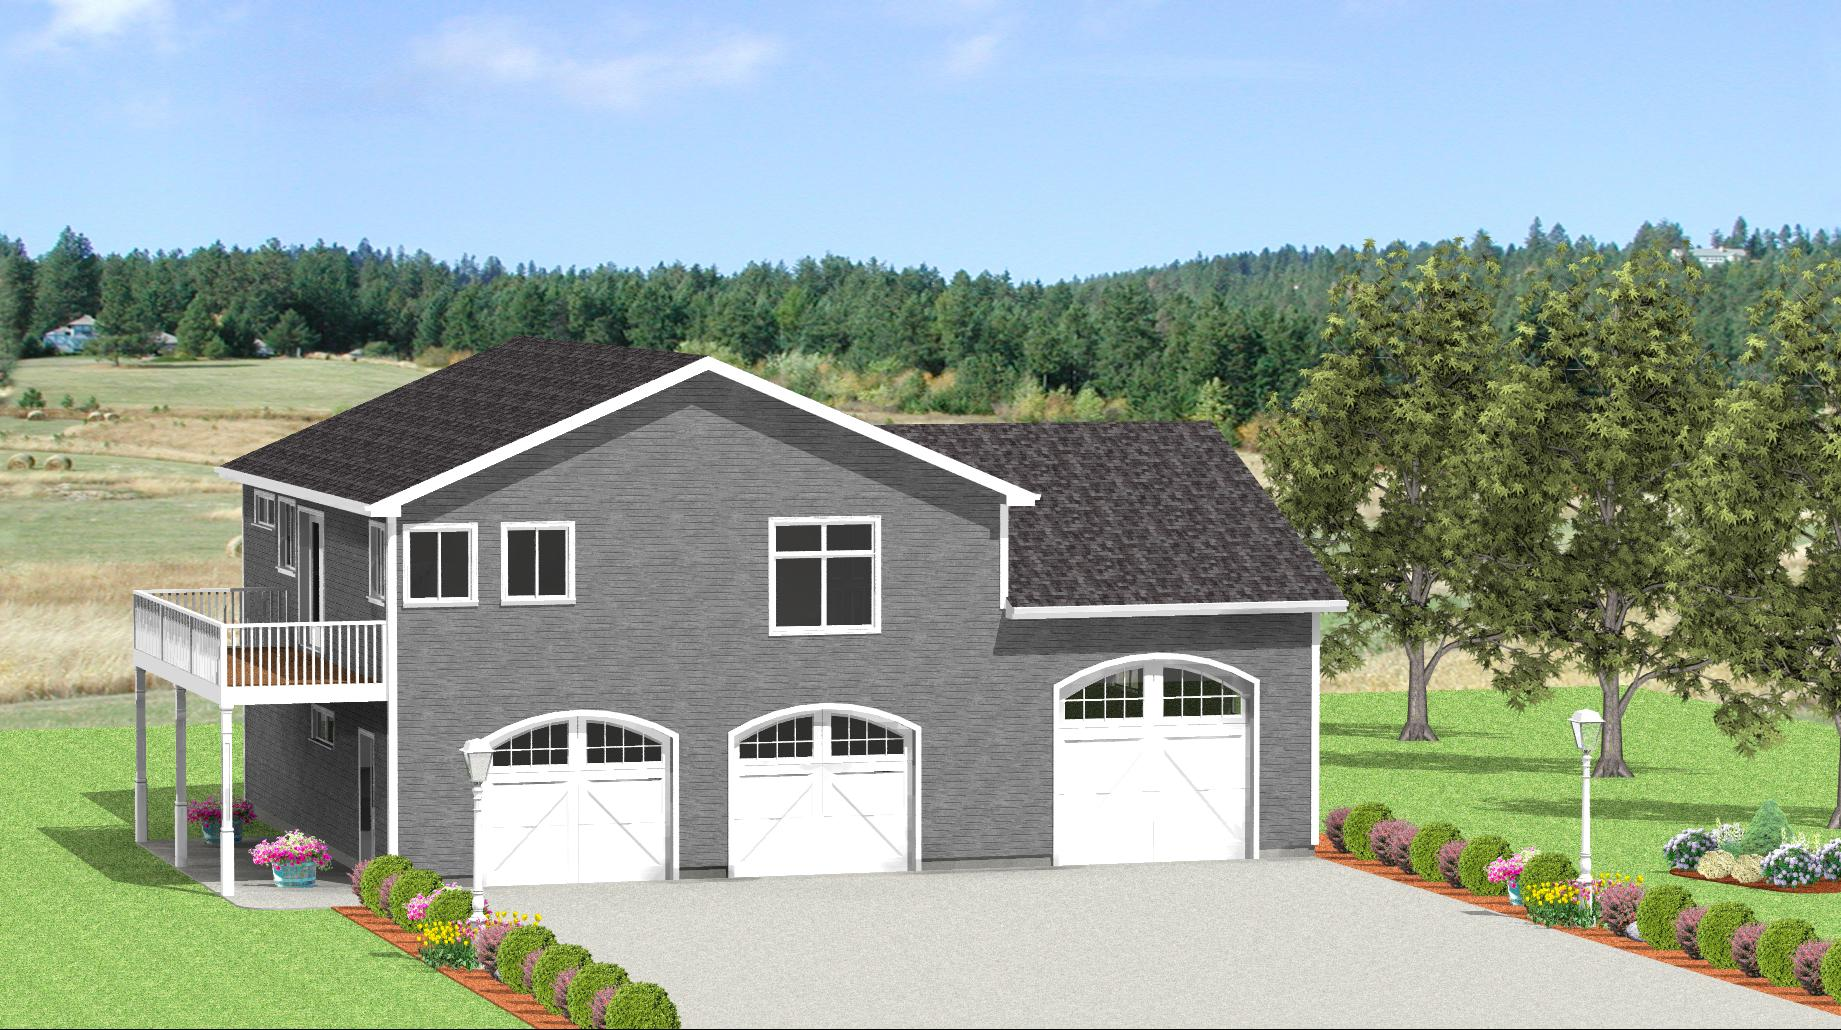 Garage Plans And Garage Designs By Design Connection, LLC